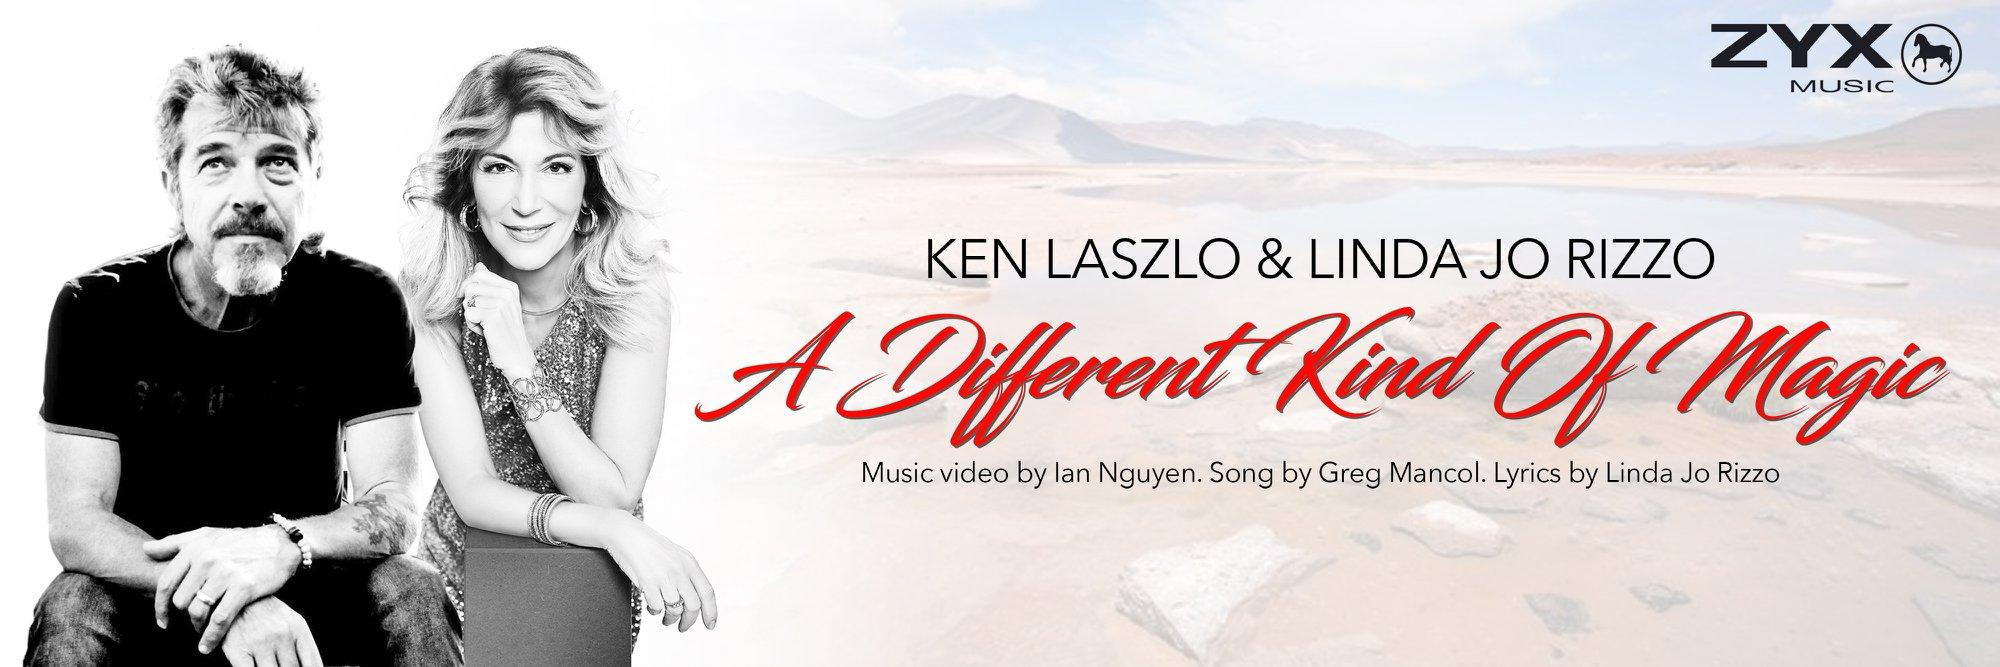 Ken Laszlo & Linda Jo Rizzo - A Different Kind Of Magic